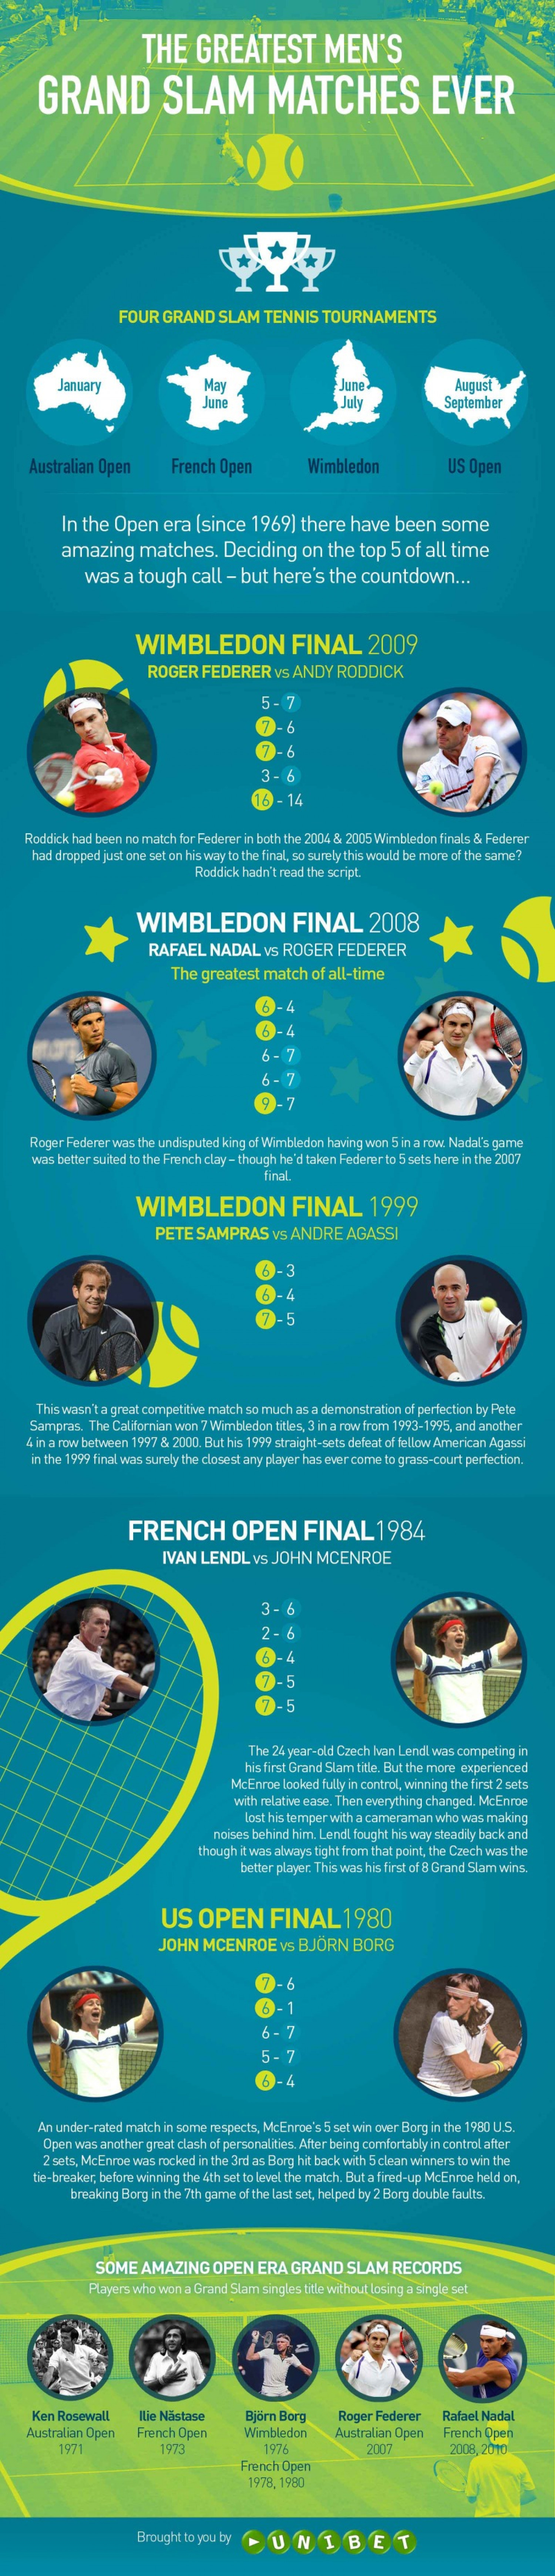 The Greatest Men's Grand Slam Matches Ever Infographic